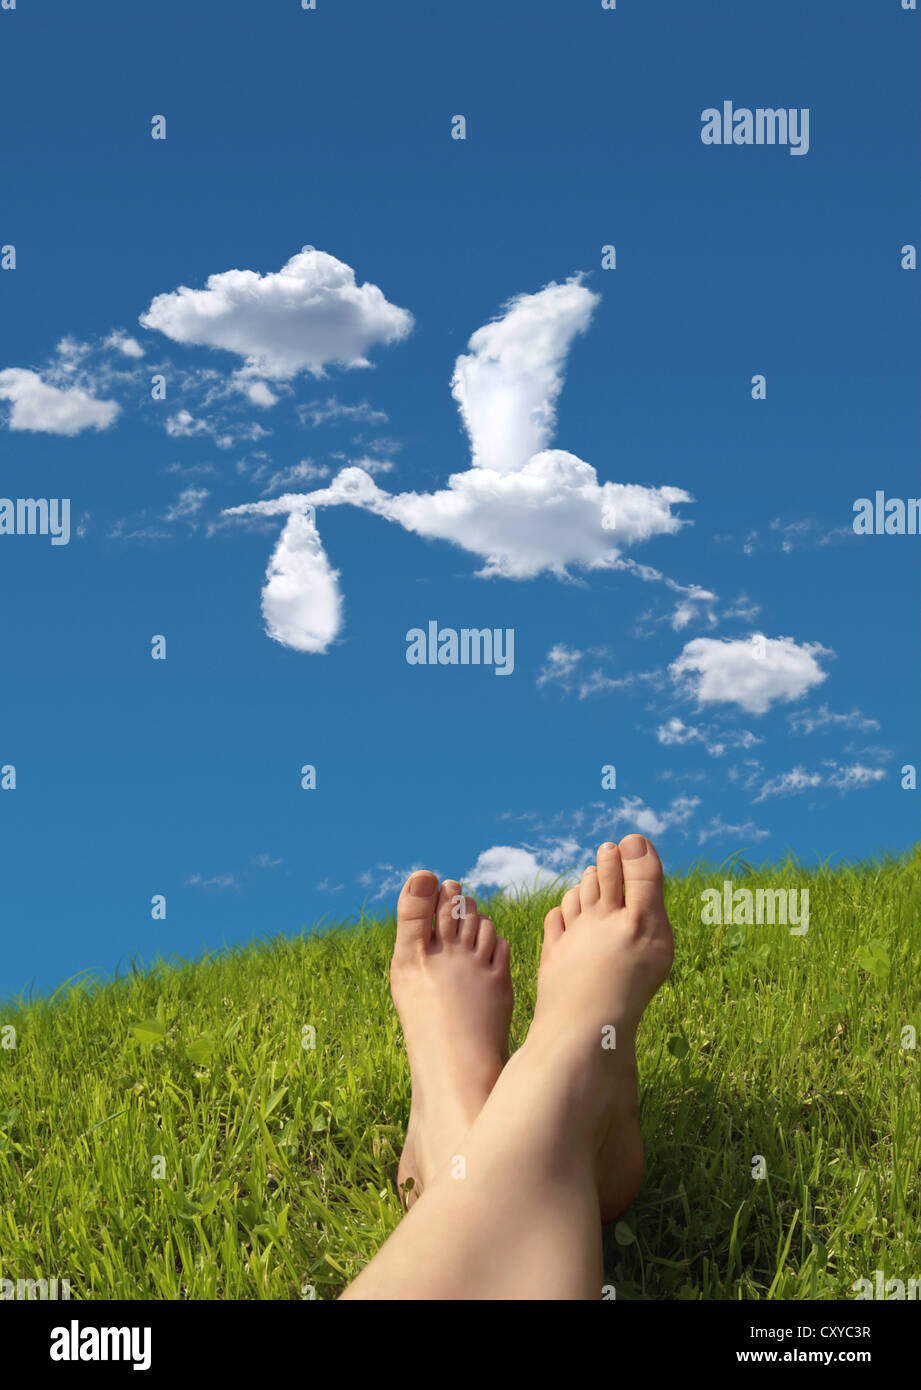 Woman lying on a meadow, detail of feet with a cloud formation shaped like a stork carrying a baby in the sky - Stock Image